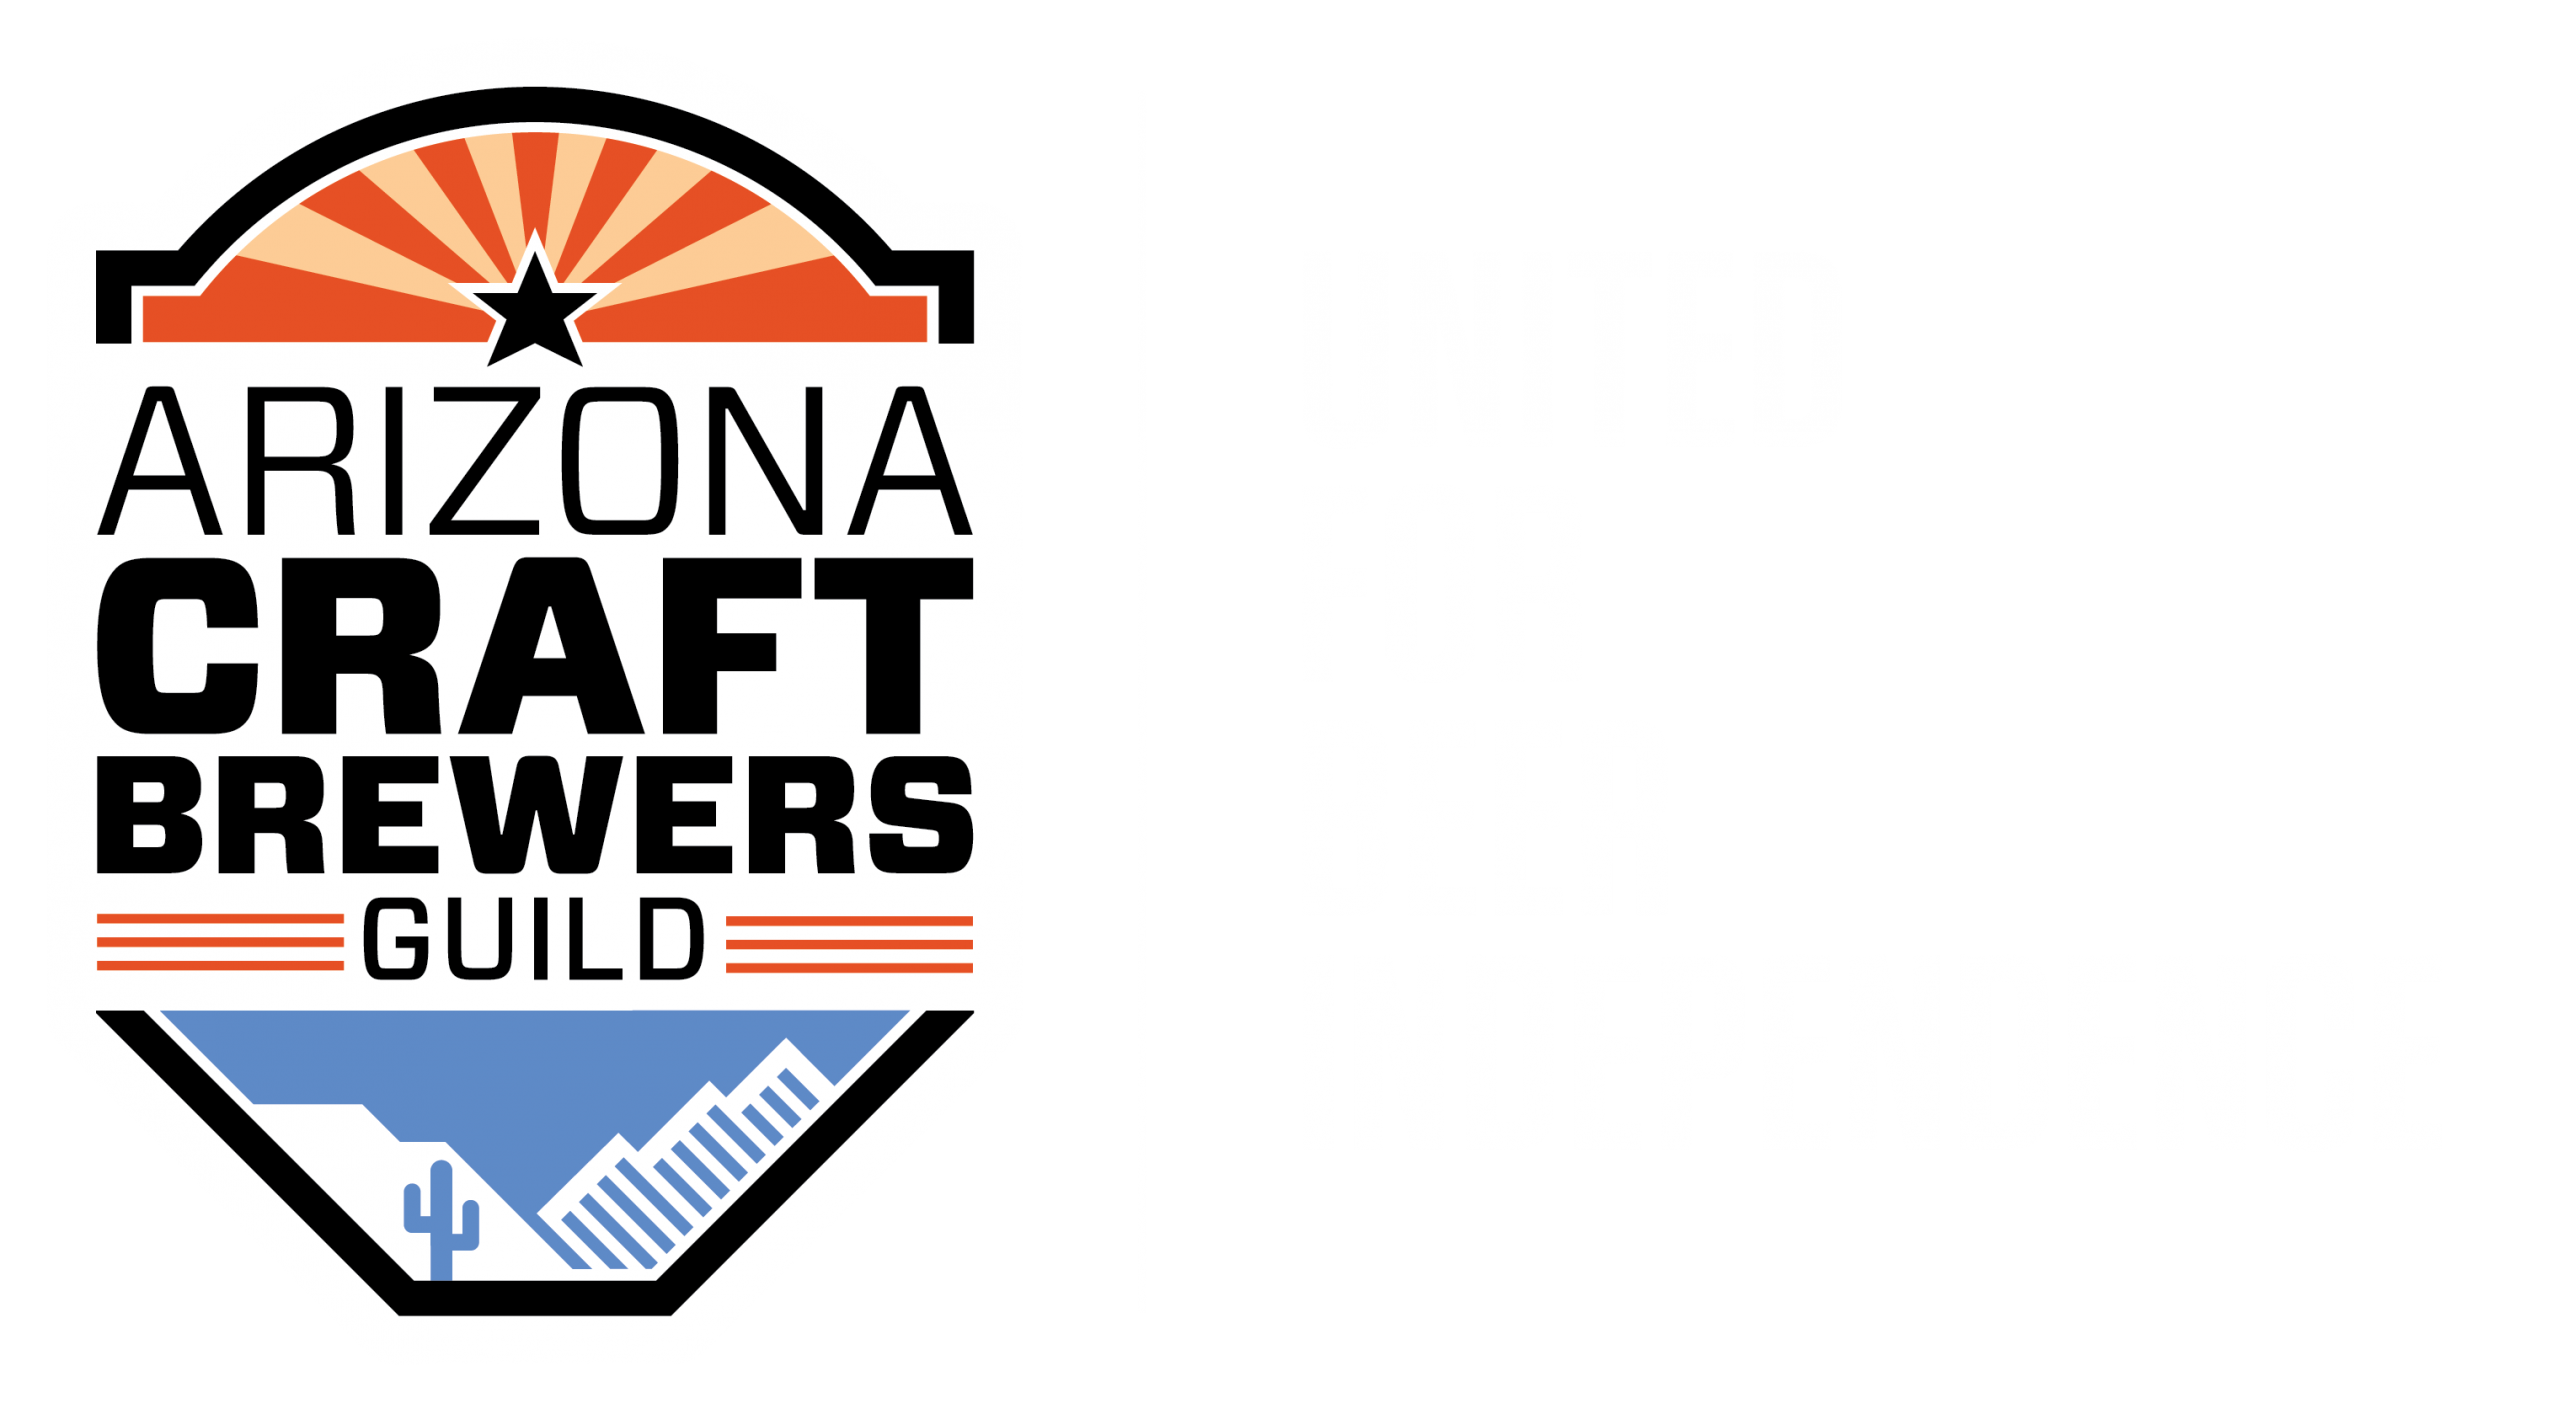 Jeff Thorsett | Arizona Craft Brewers Guild